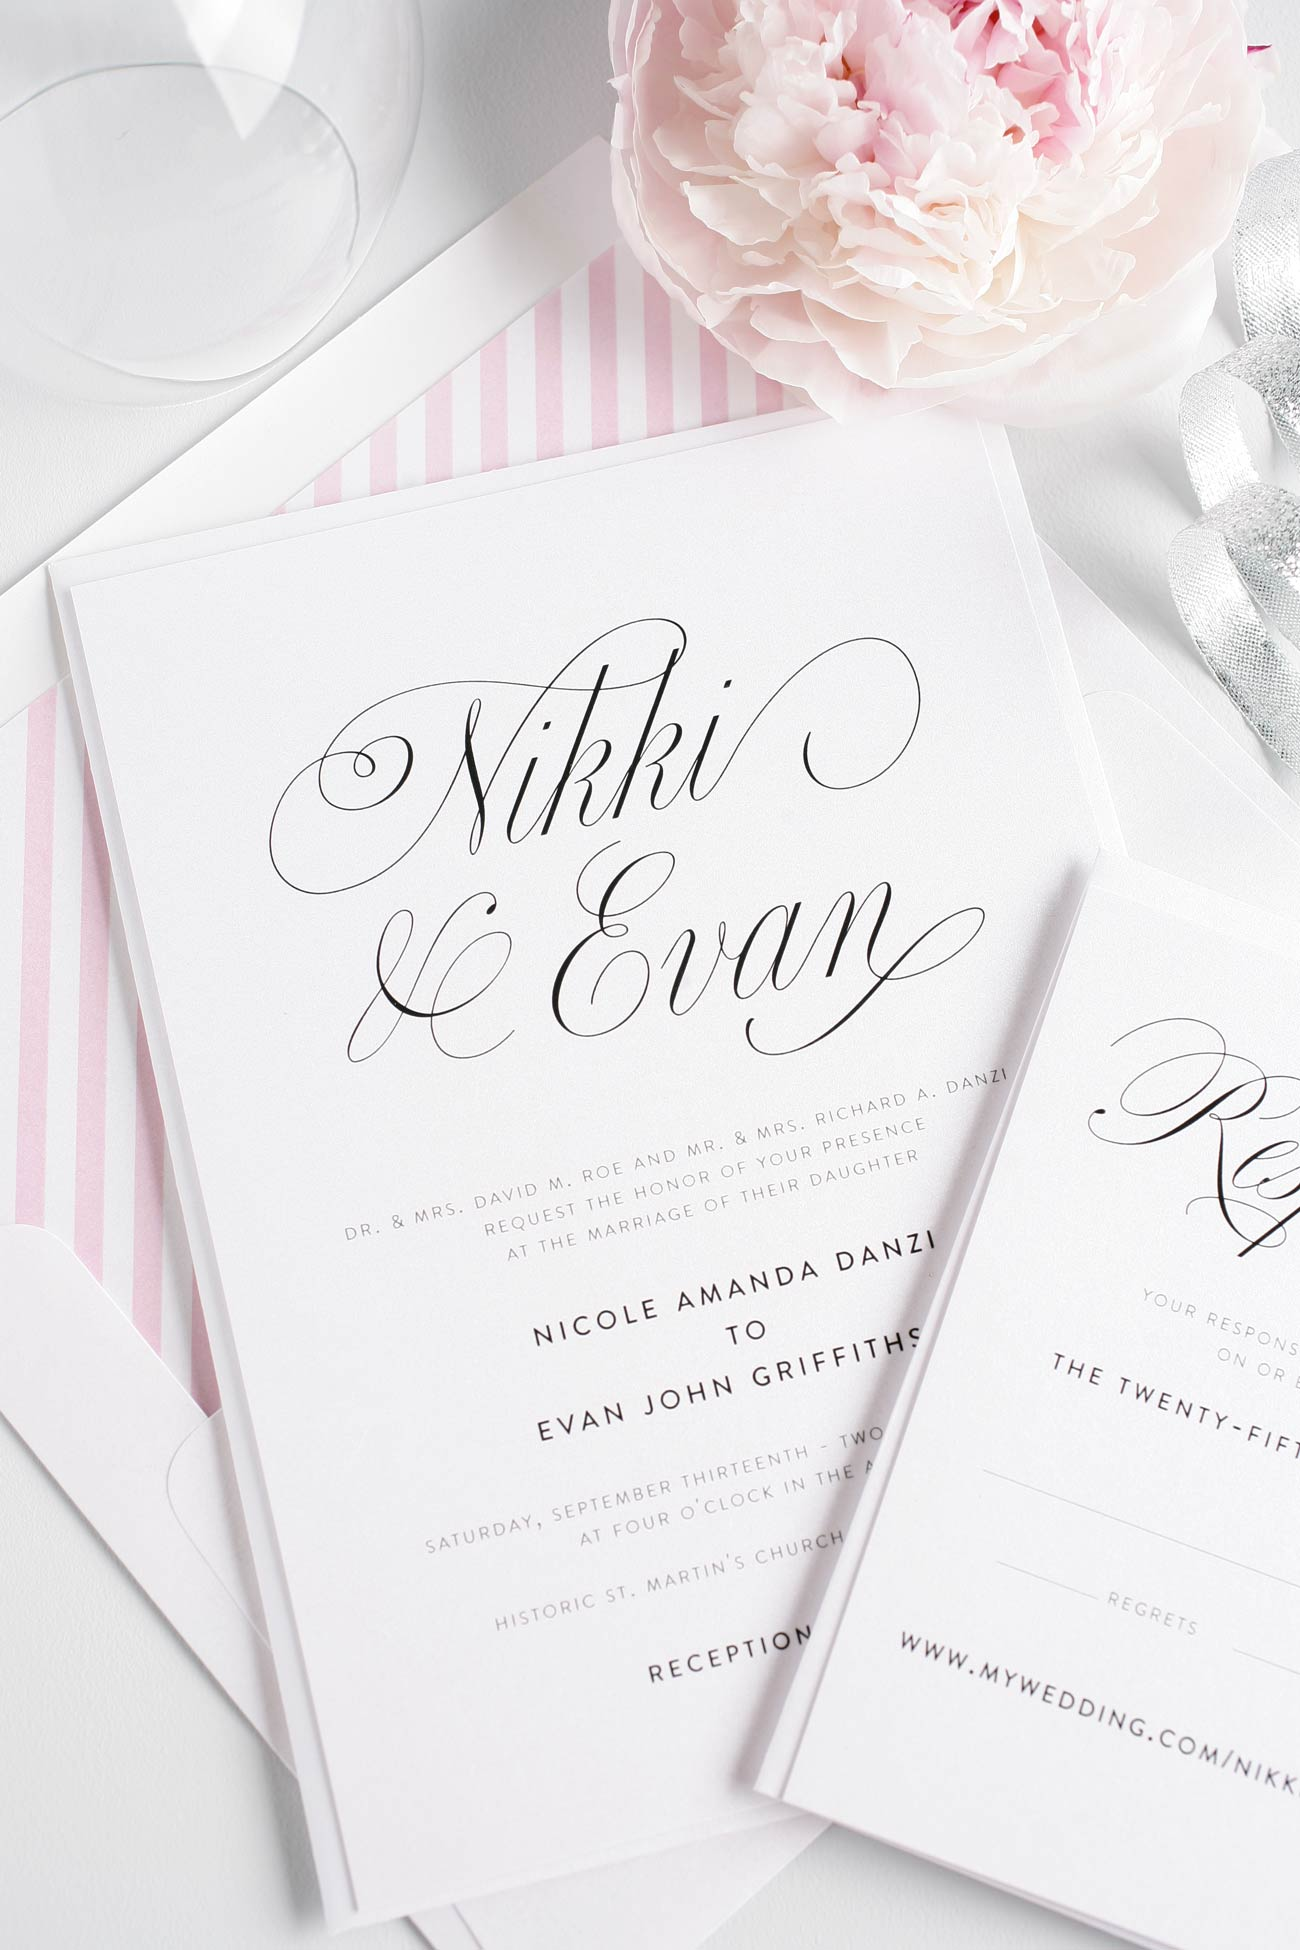 Script Wedding Invitations in Pink